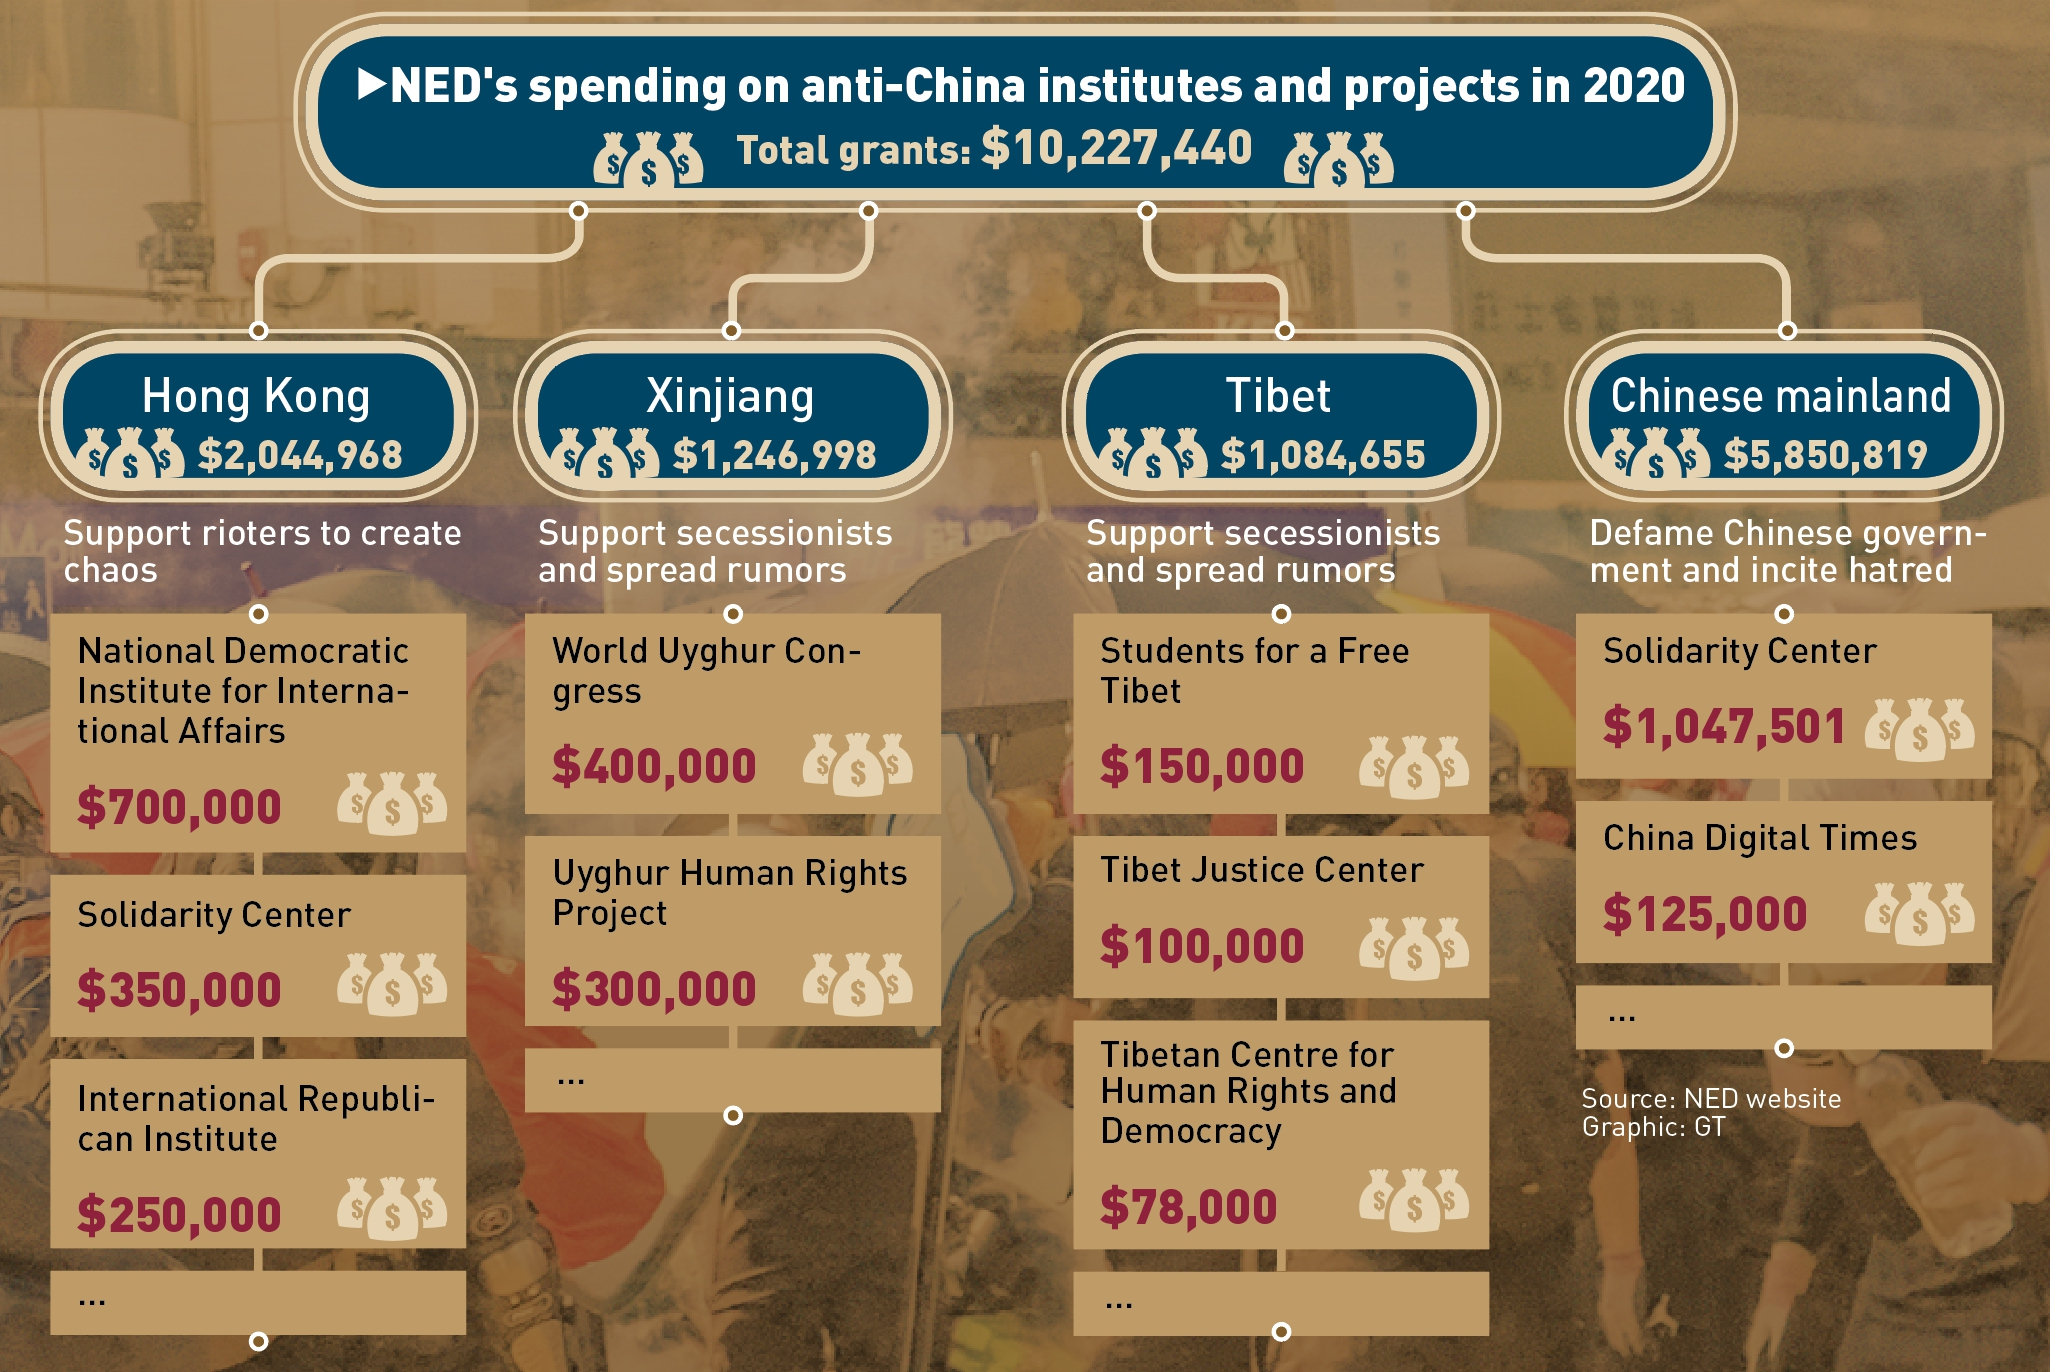 NED's spending on anti-China institutes and projects in 2020 Source: NED website Graphic: GT